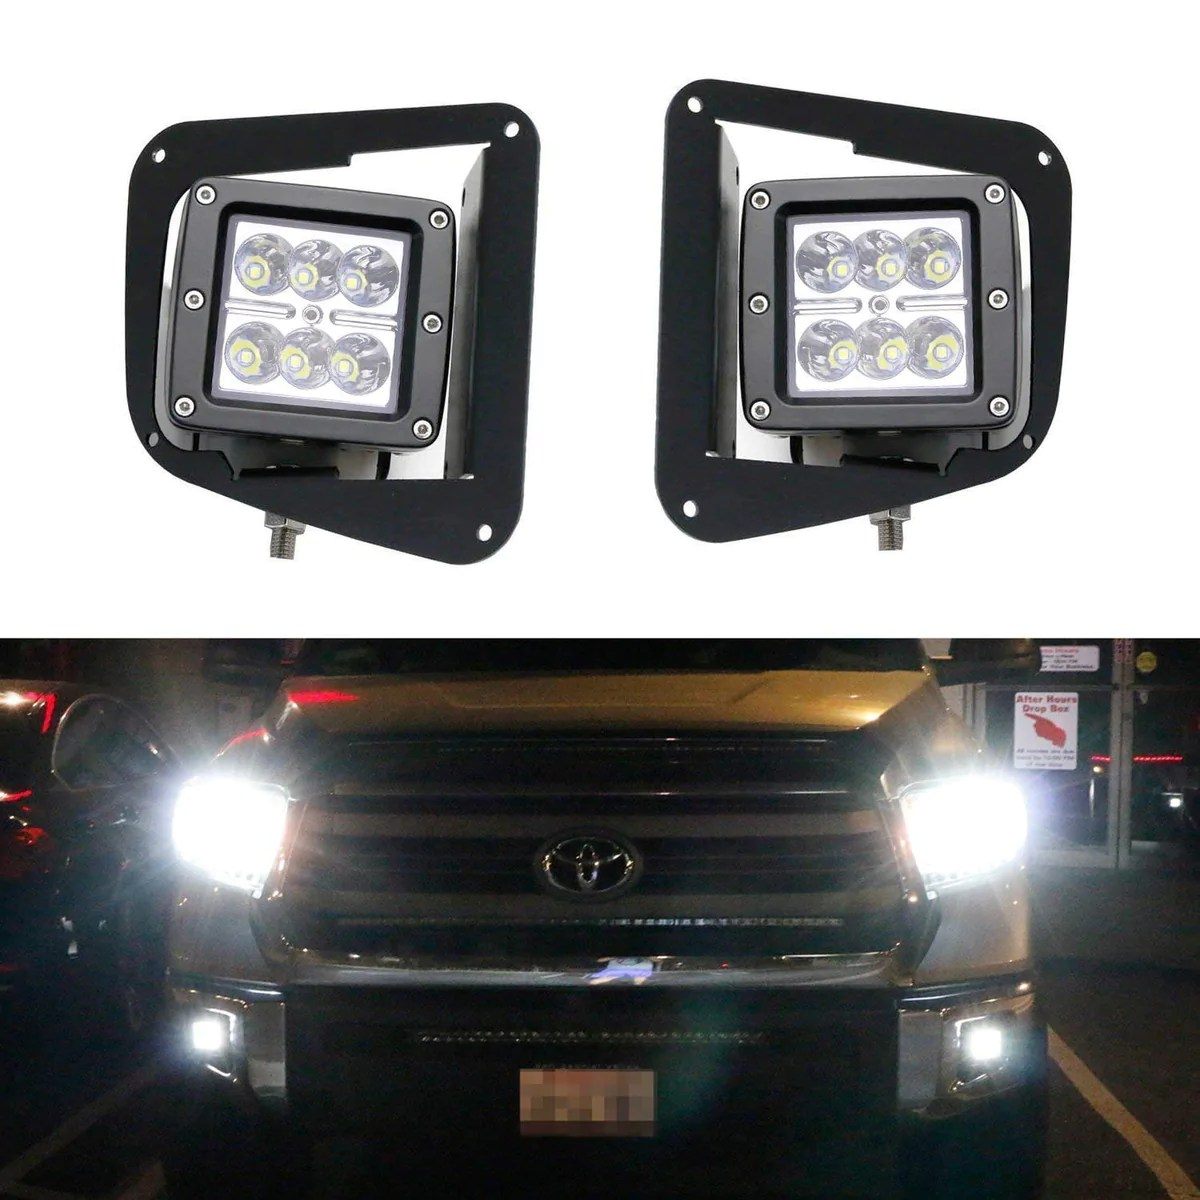 medium resolution of led pod light fog lamp kit for 2014 up toyota tundra includes 2 24w high power 2x3 cree led cubes foglight location mount brackets wiring adapter